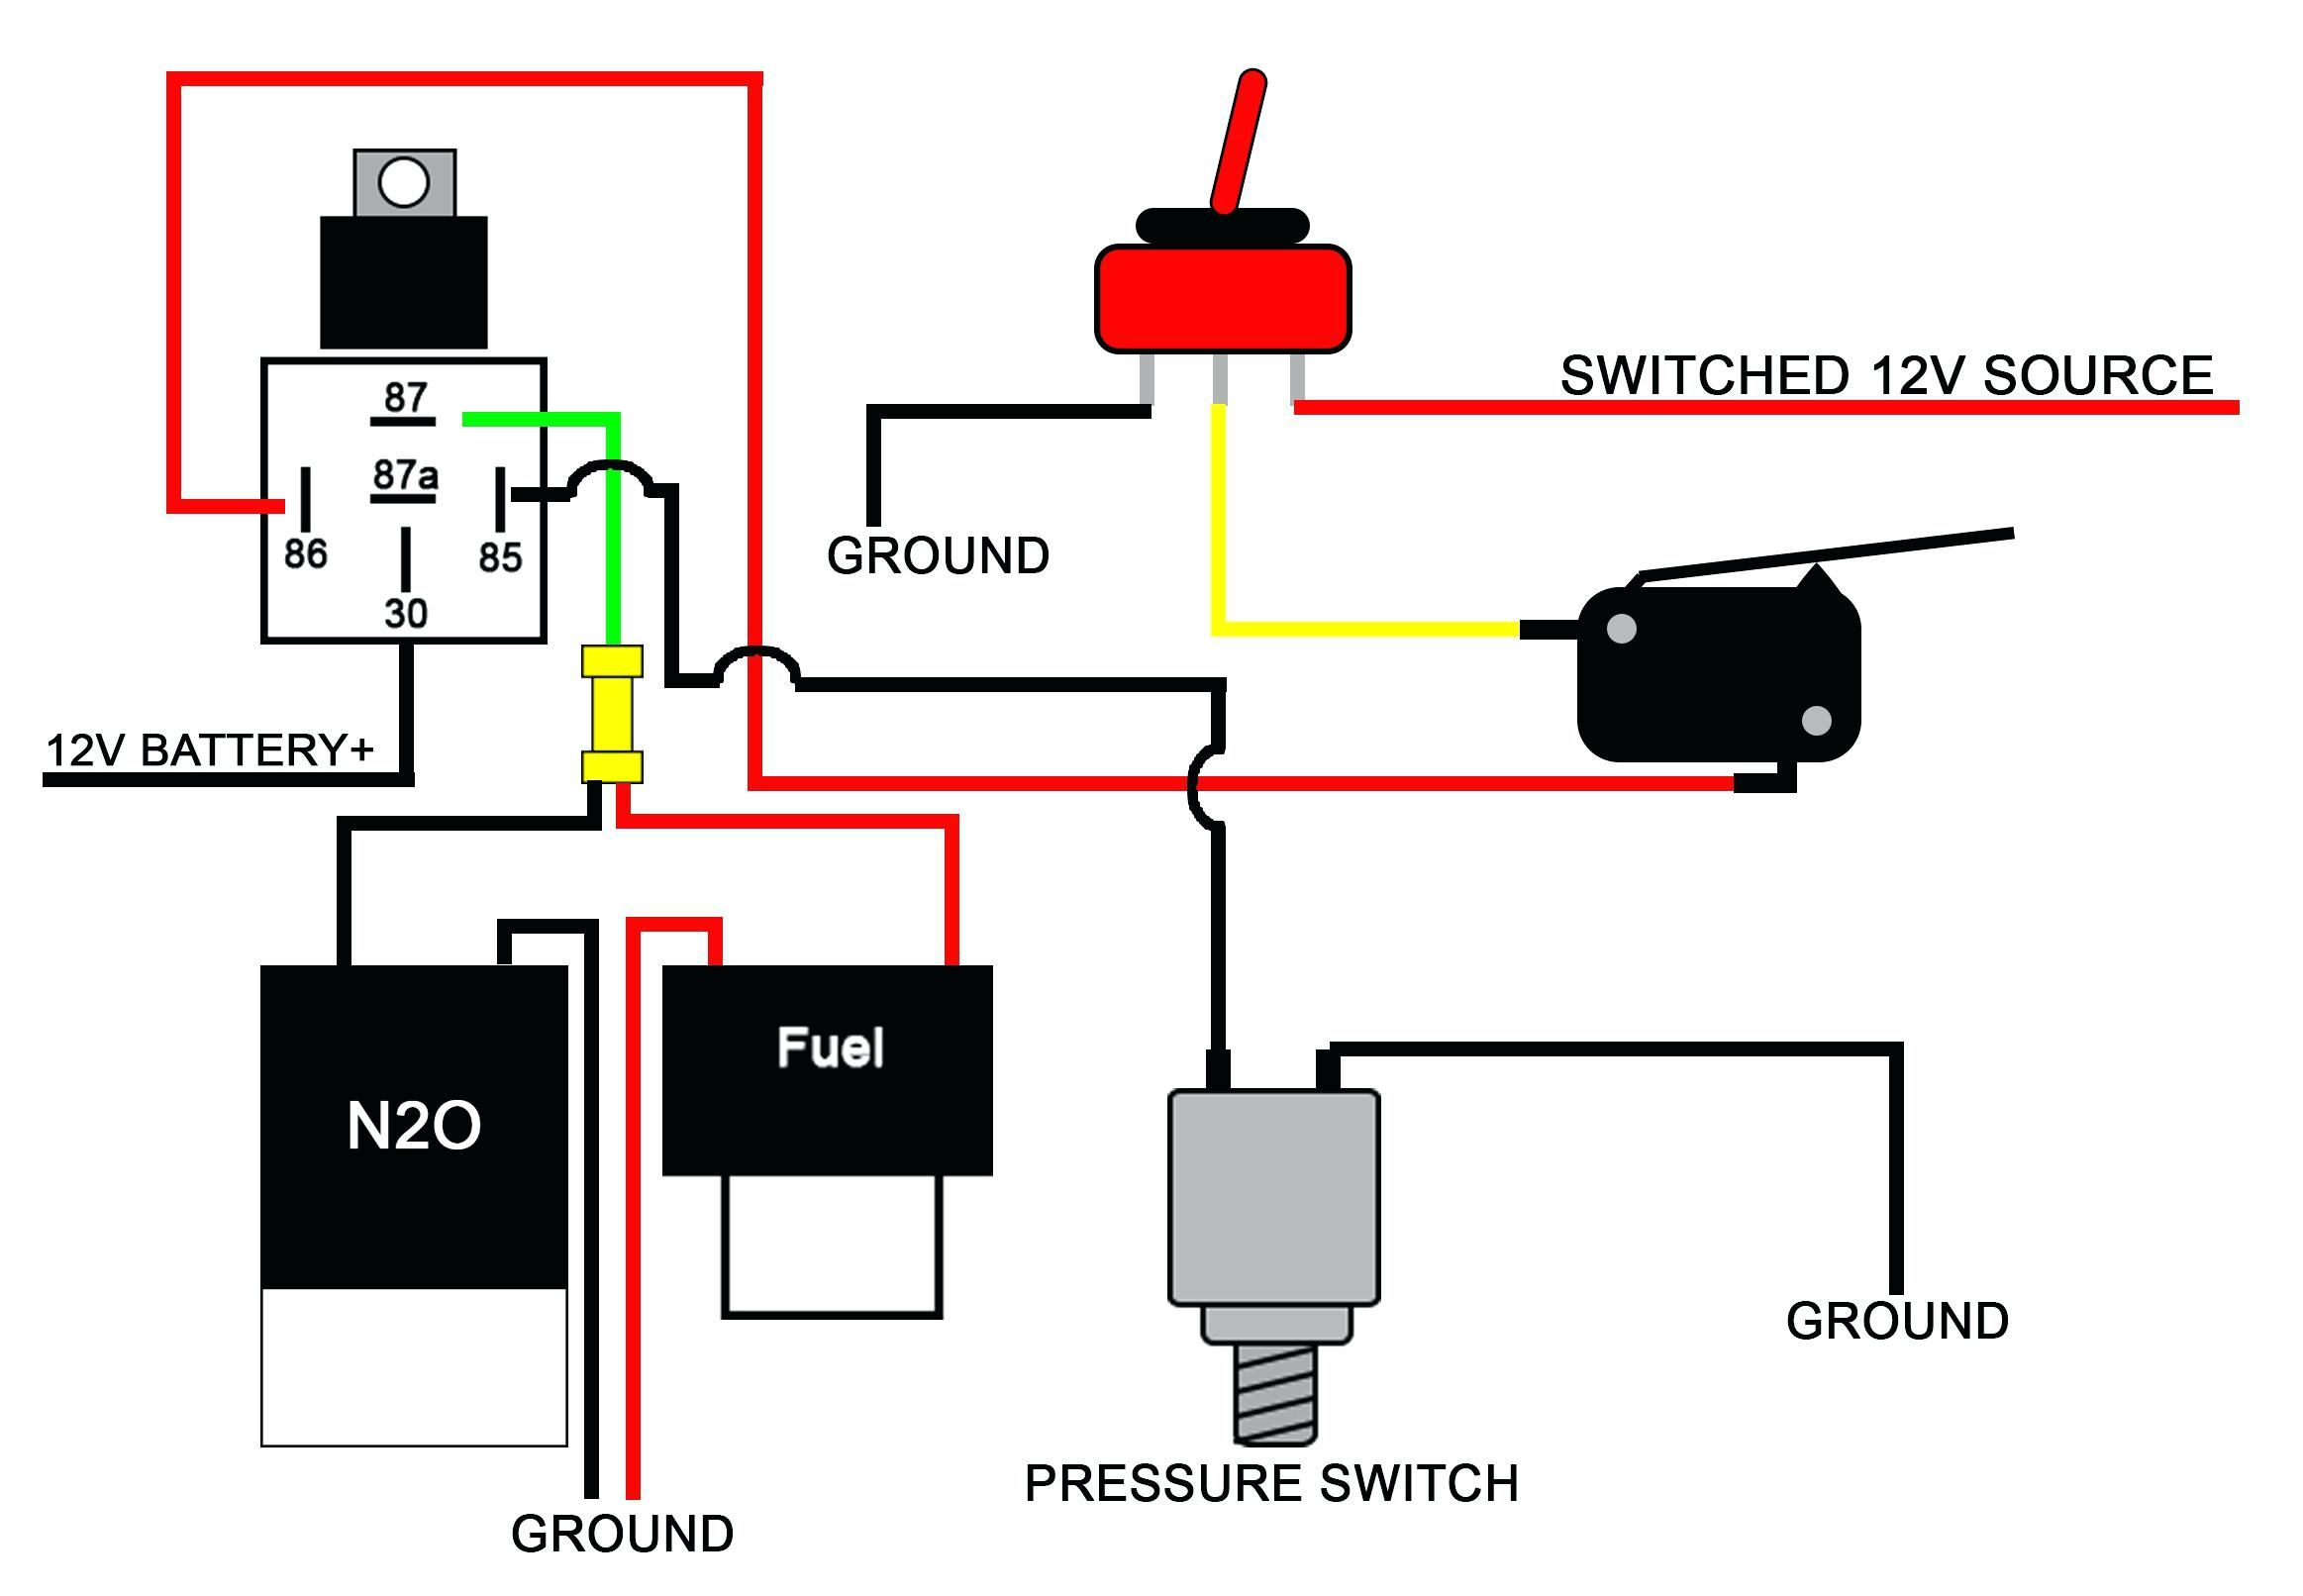 12v relay wiring diagram 5 pin thoritsolutions com [ 2326 x 1612 Pixel ]